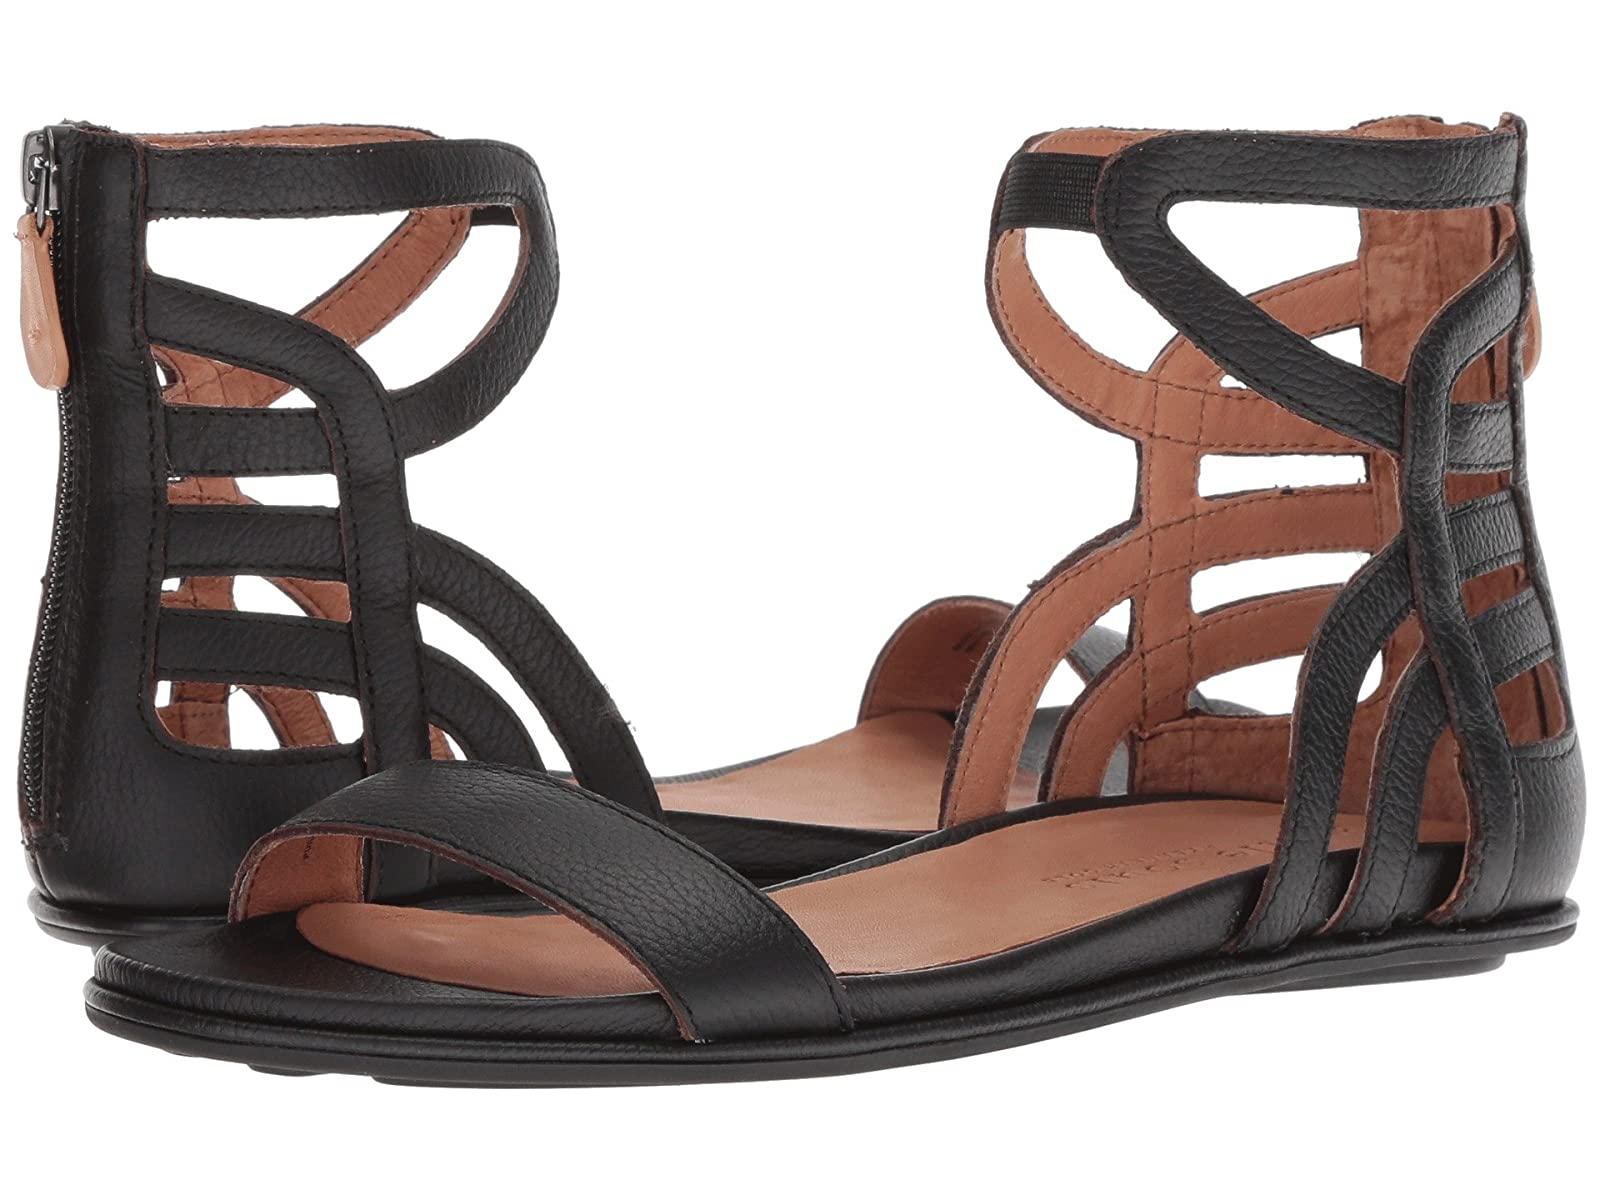 Gentle Souls by Kenneth Cole LarisaAtmospheric grades have affordable shoes